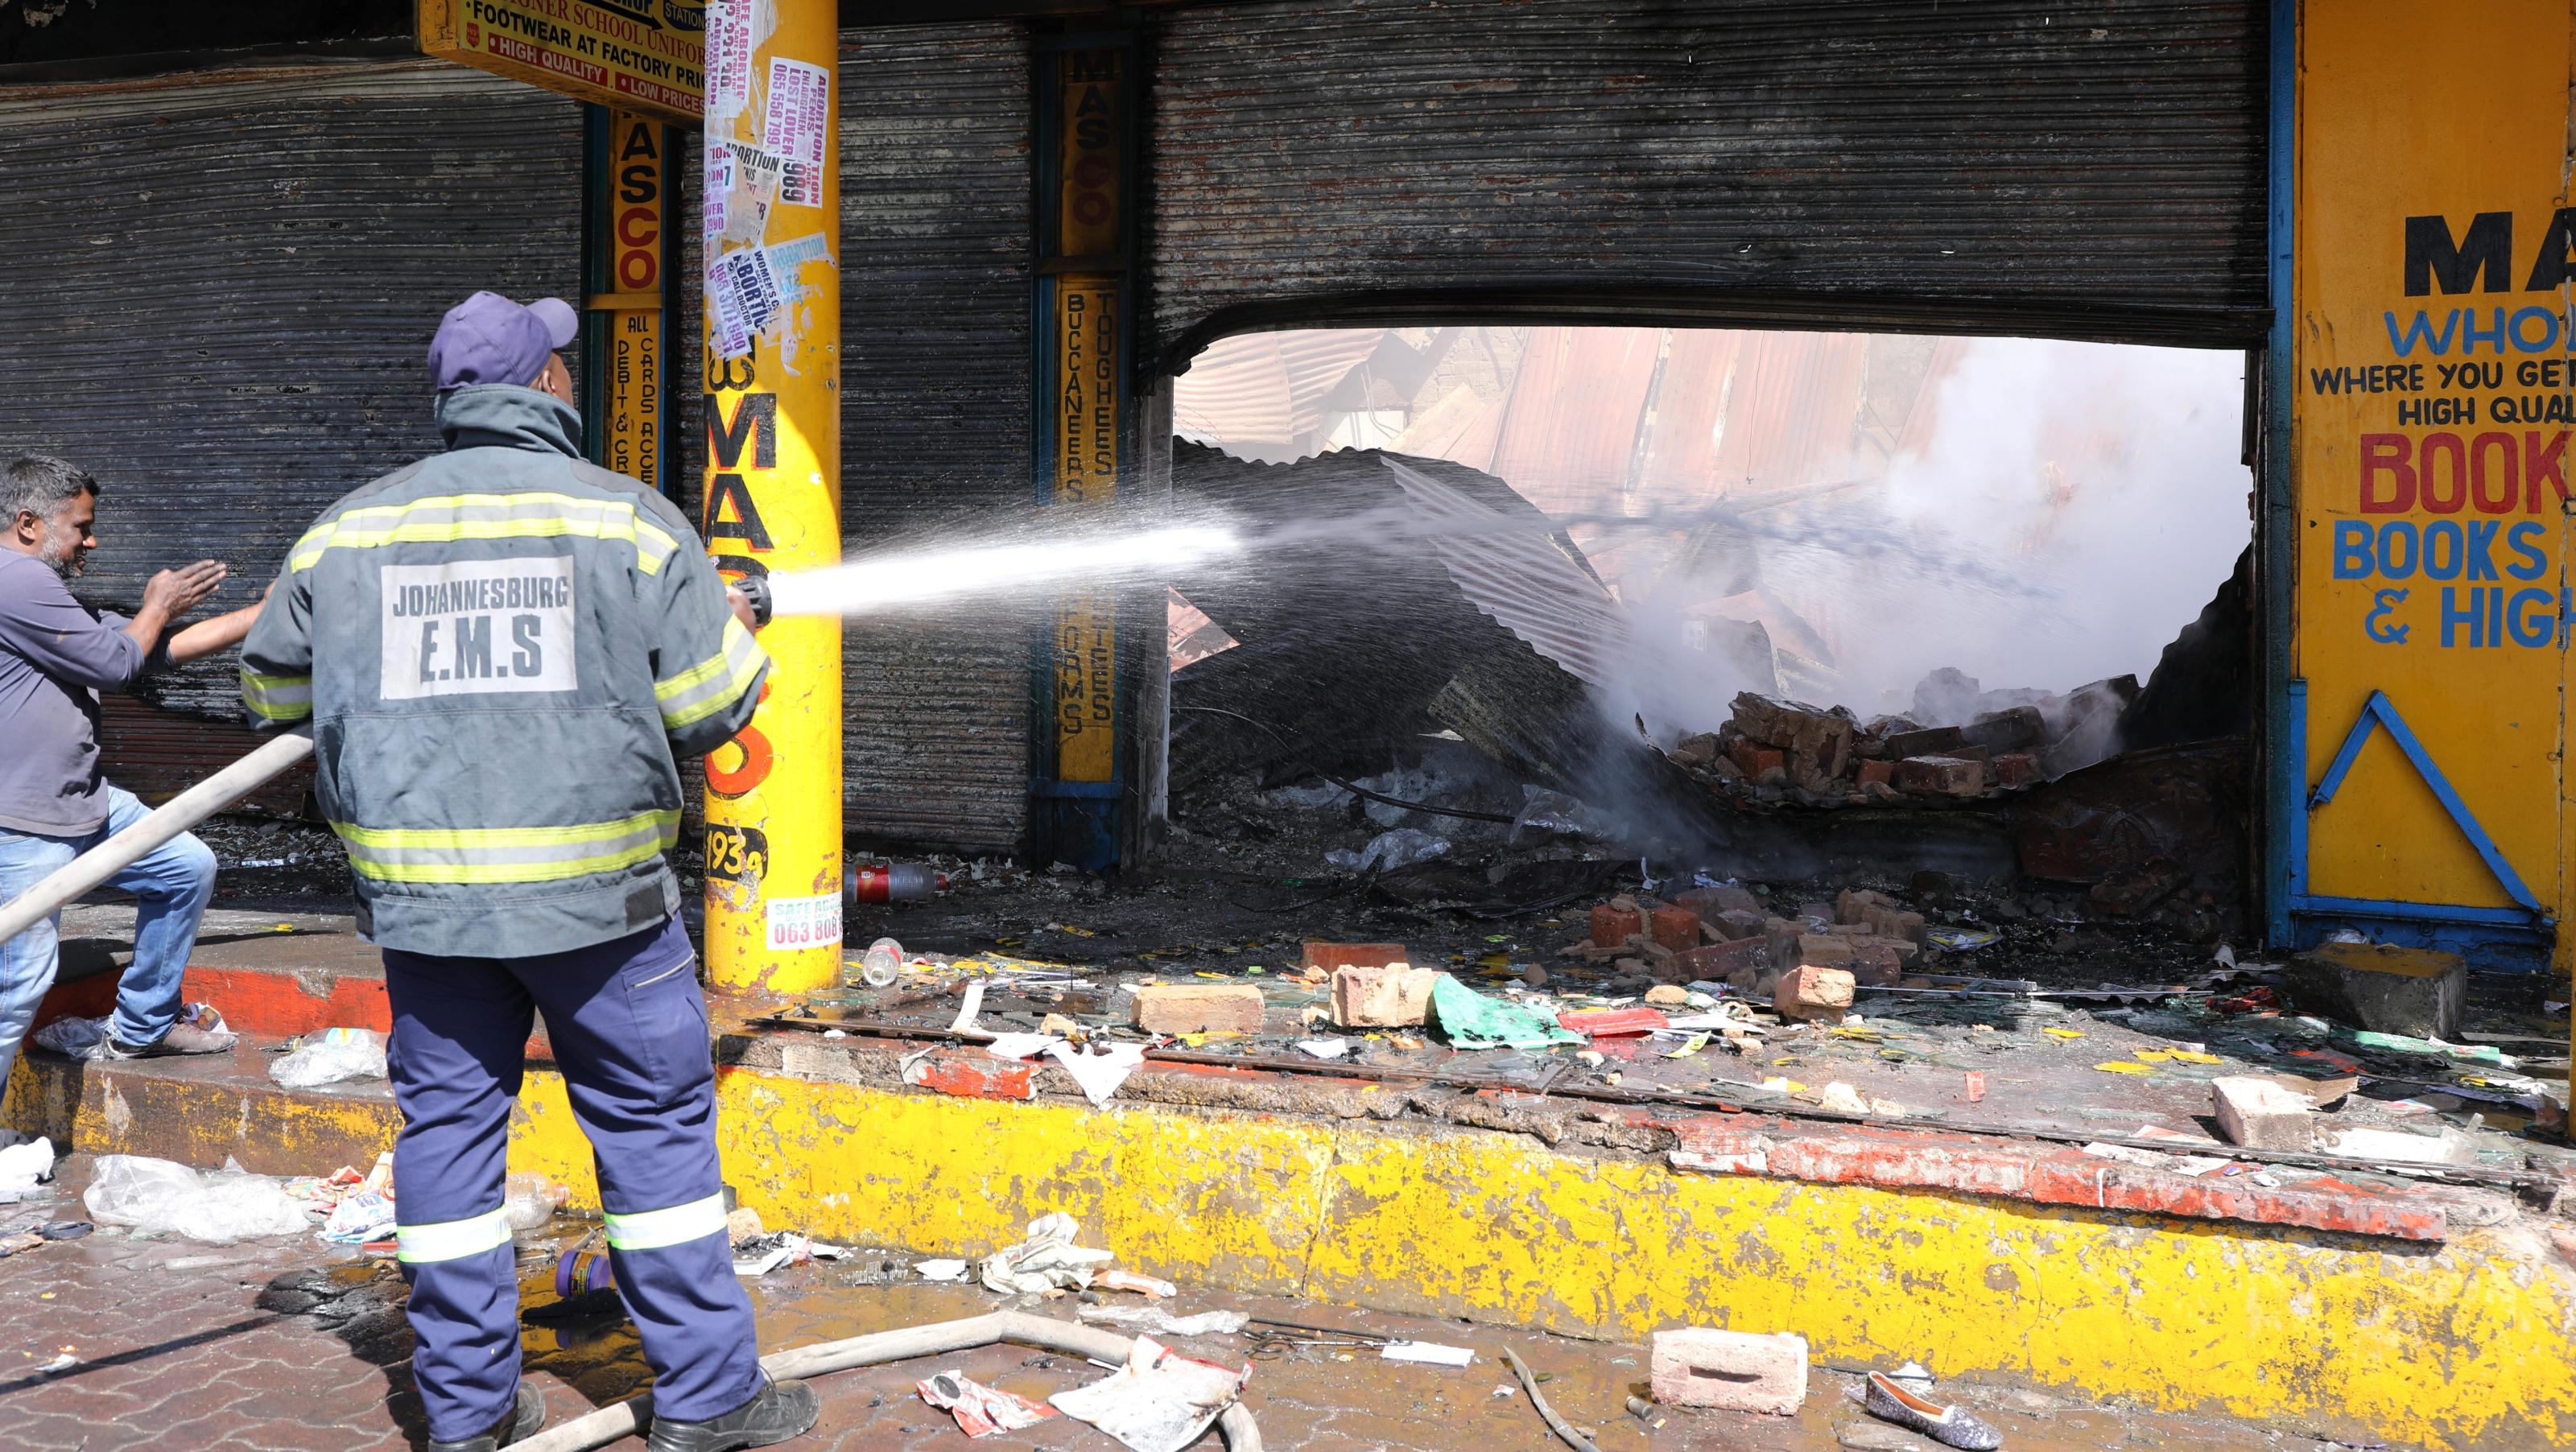 South Africa xenophobic attacks result in reprisals for MTN, Shoprite